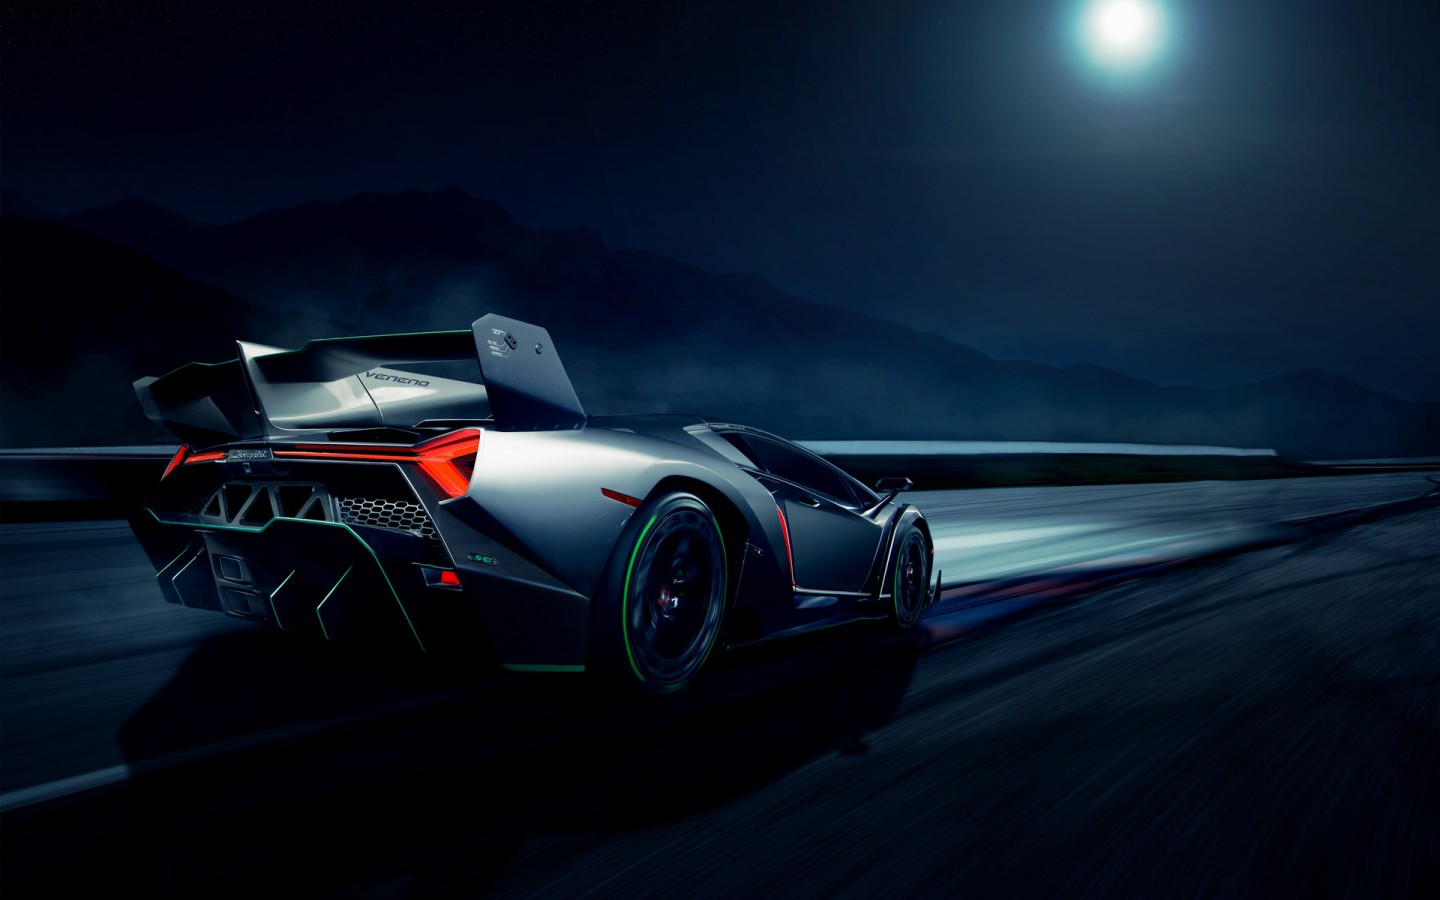 Super Hd Wallpapers Iphone X Lamborghini Veneno Supercar 2 Wallpaper Hd Car